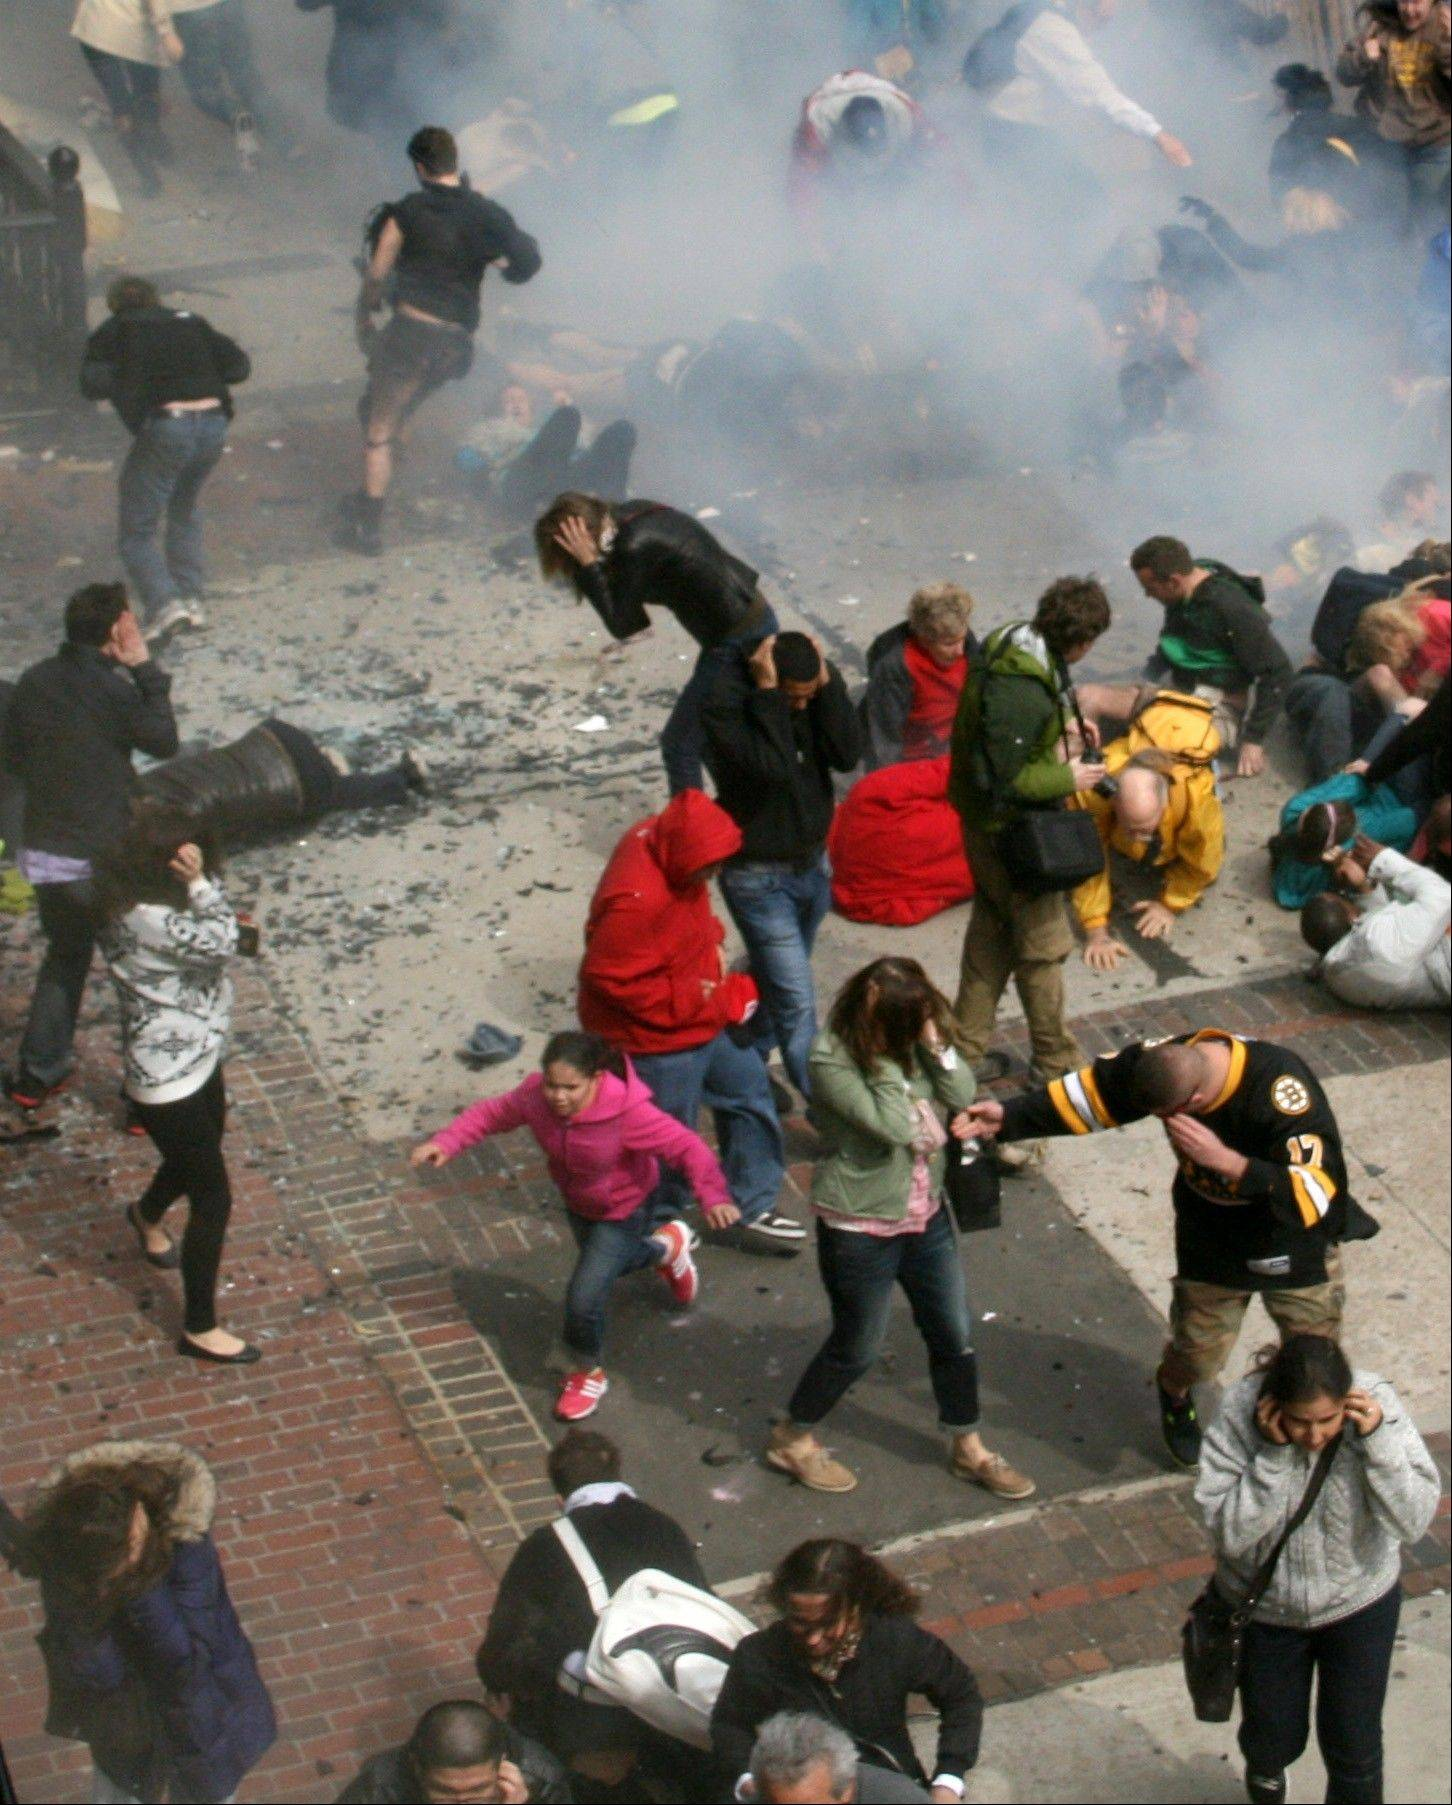 People react to an explosion Monday at the 2013 Boston Marathon in Boston.